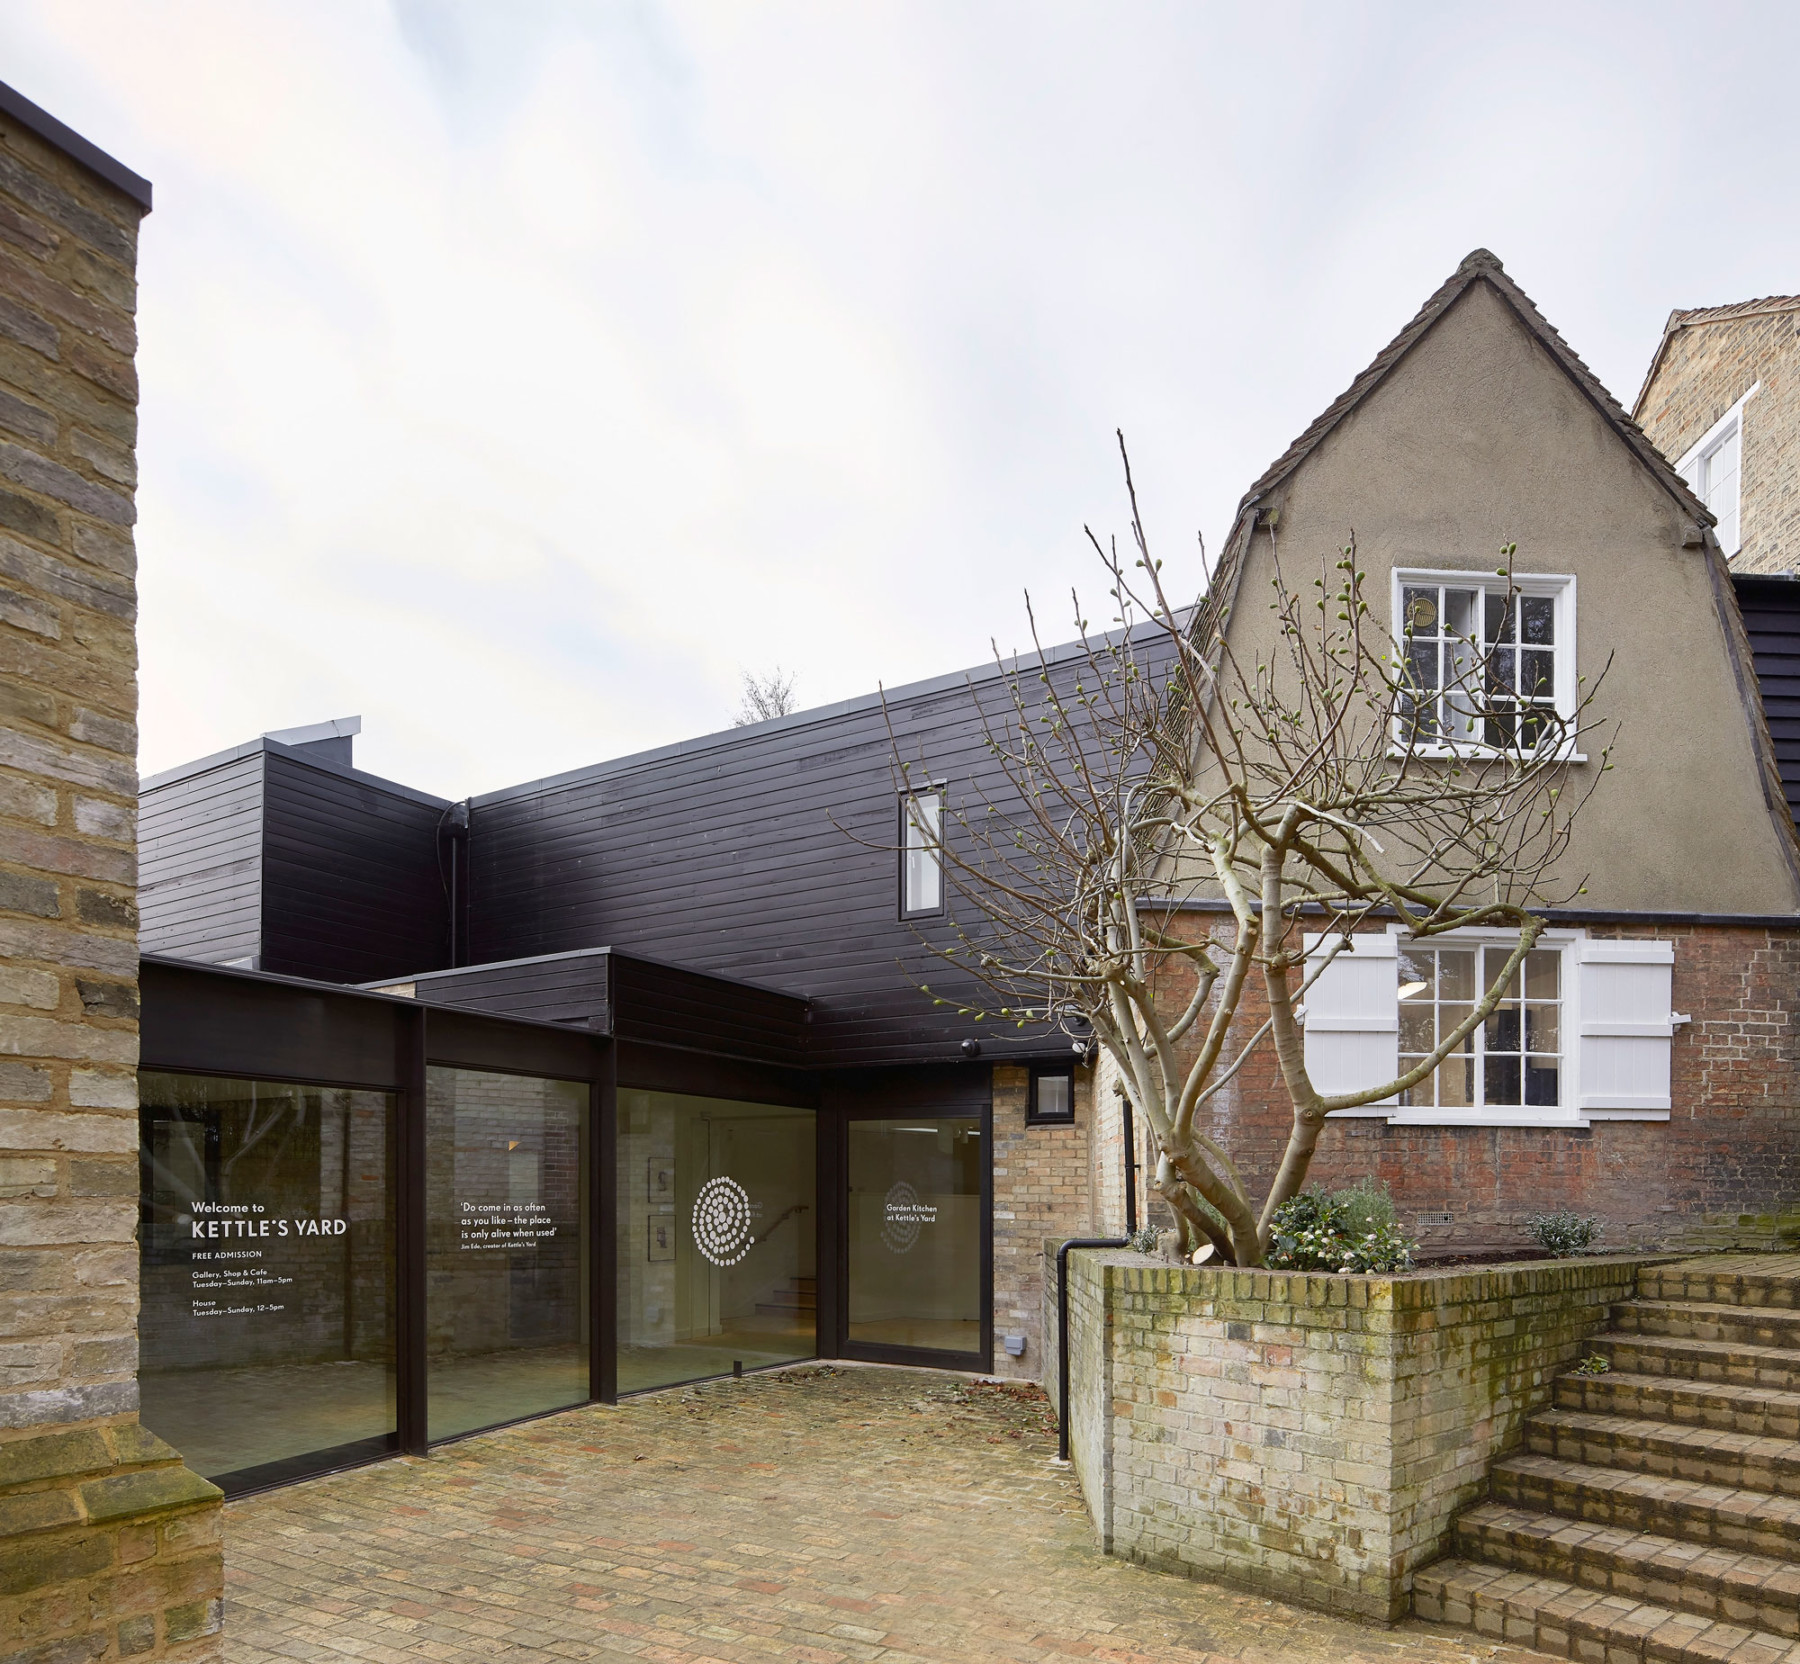 Jamie-Fobert-Architects Kettle's-Yard Cambridge Hufton+Crow 018